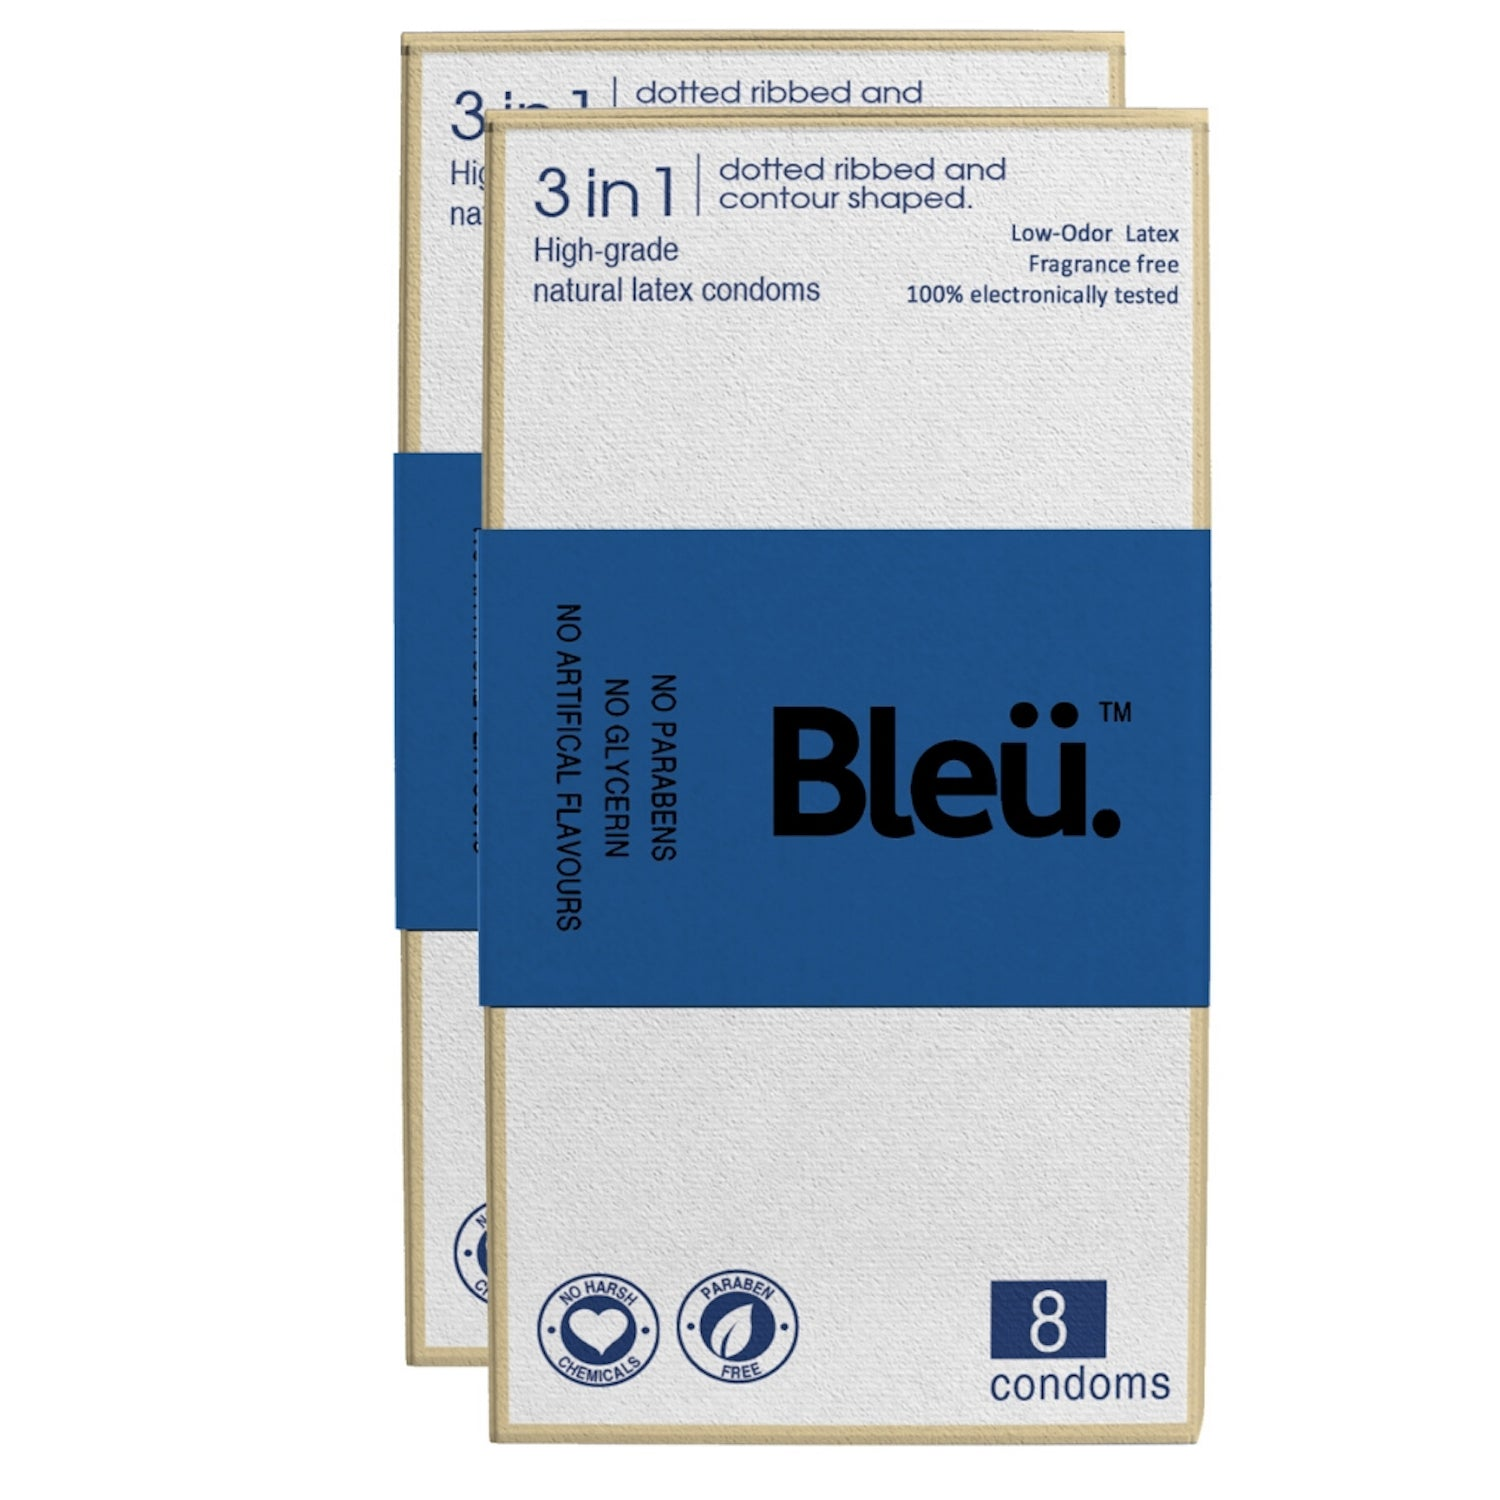 Bleu Natural Latex Paraben-Free Premium 3-In-1 Condoms Skin Friendly (8 Condoms, Pack Of 2)